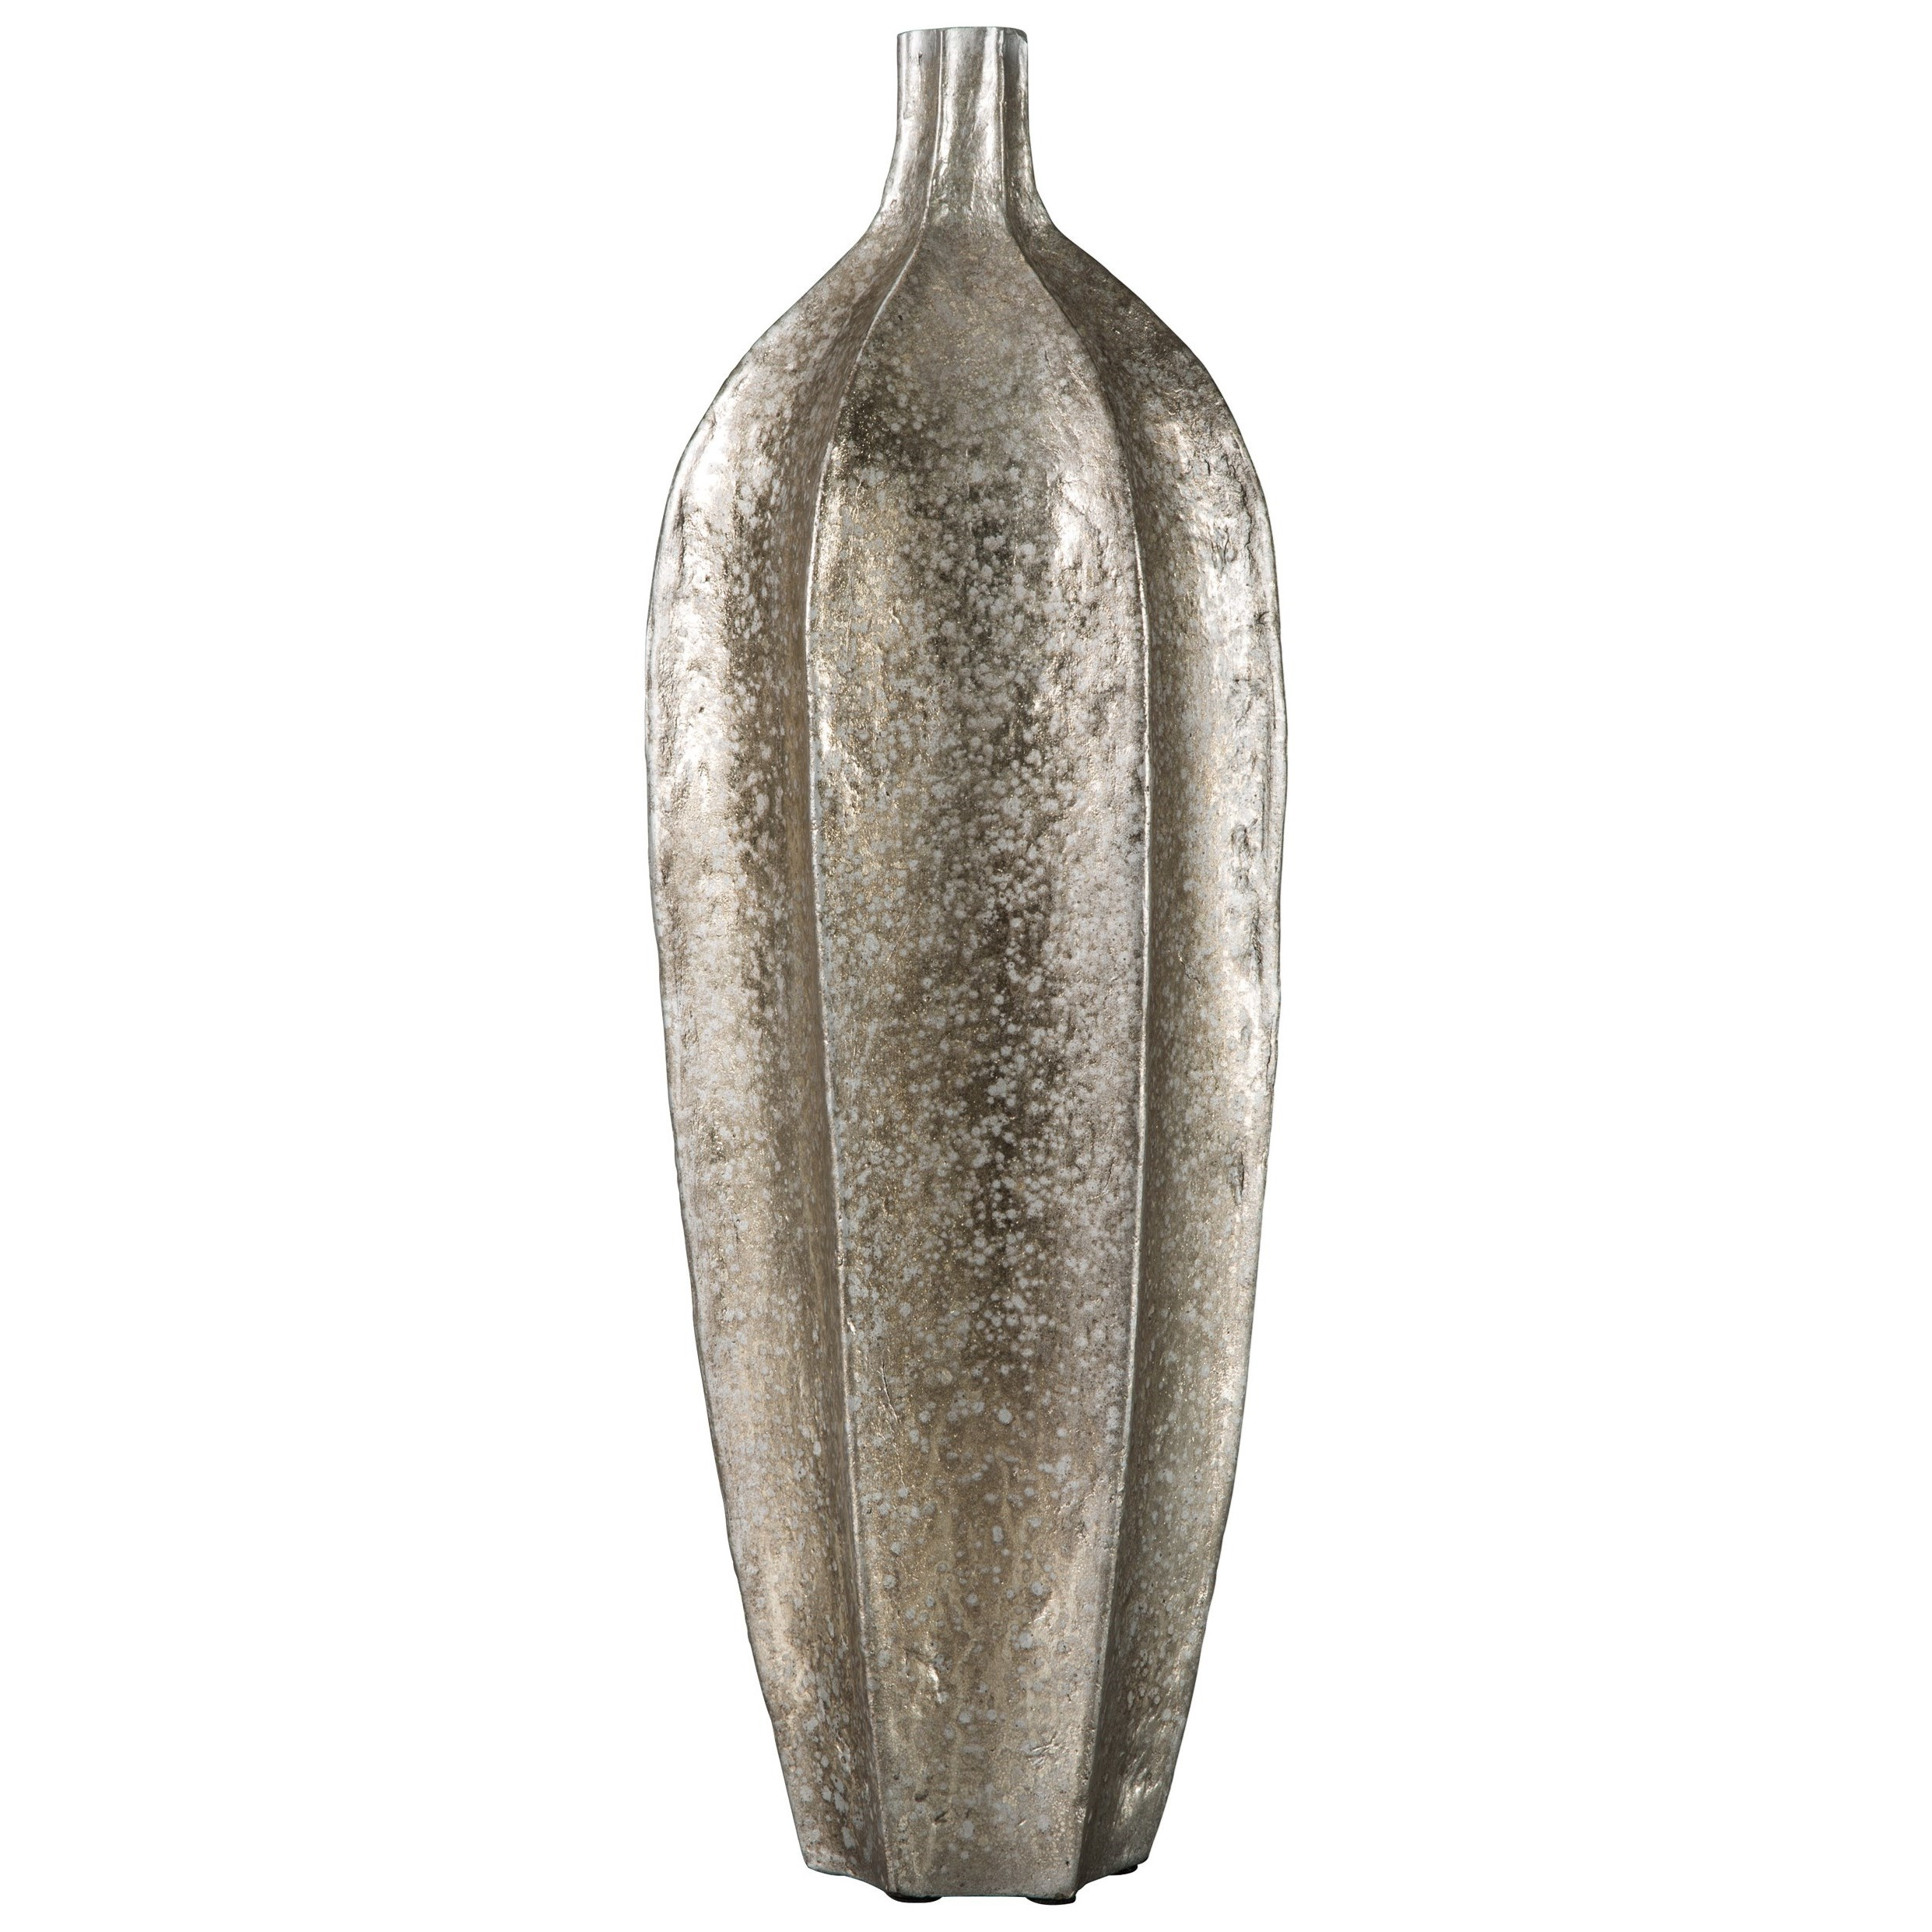 Signature Design by Ashley Accents Derion Antique Silver Finish Vase - Item Number: A2000305